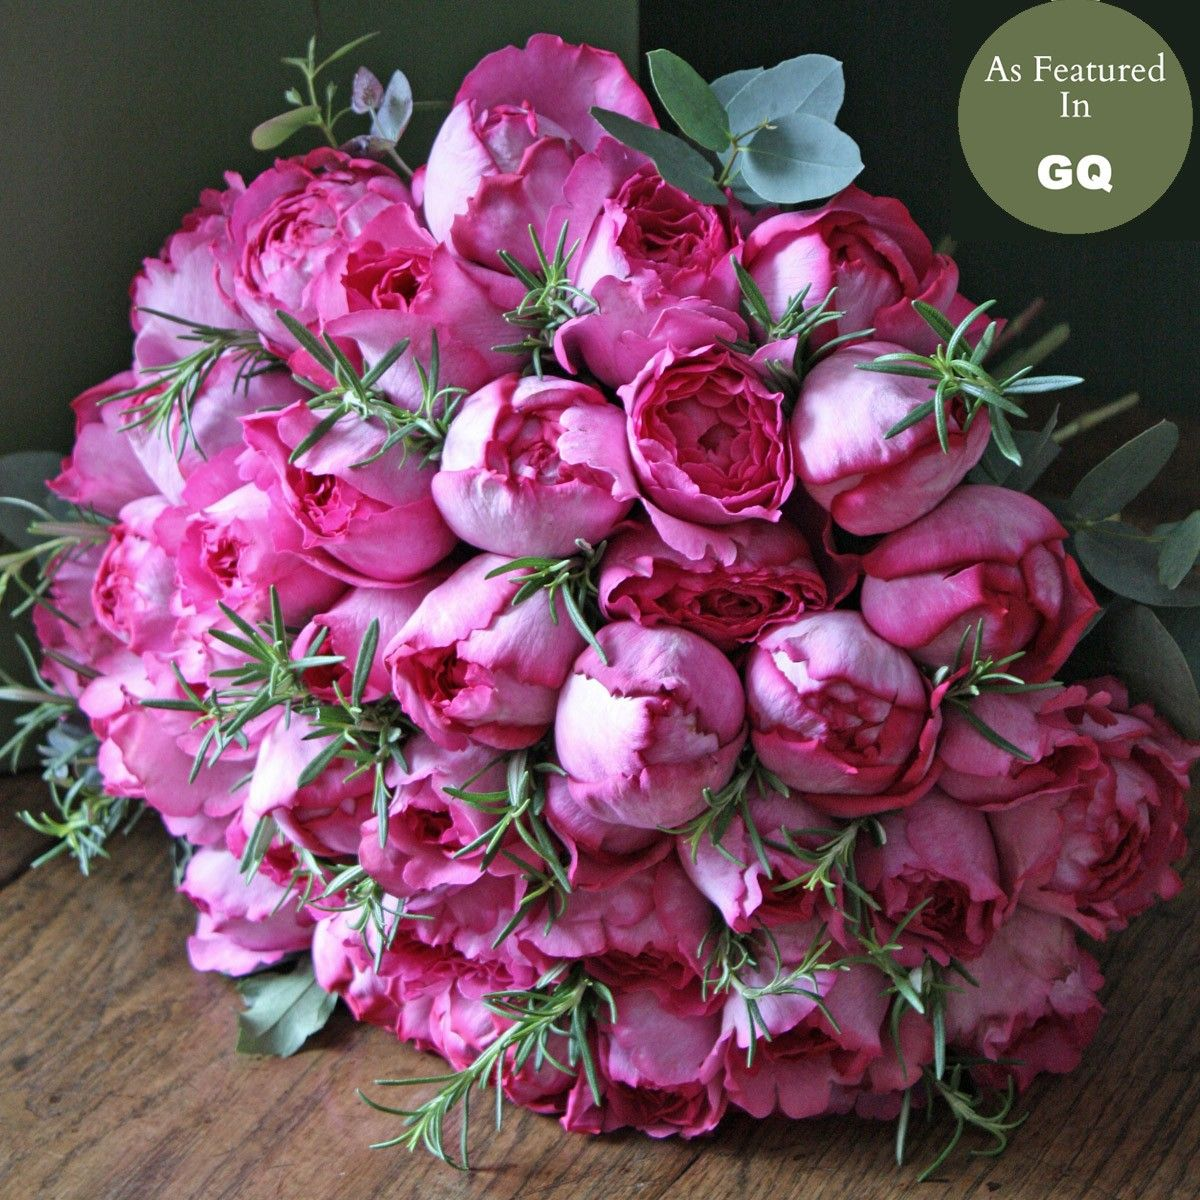 The Real Flower Company Yves Piaget Bouquet | FLOWERS | Pinterest ...